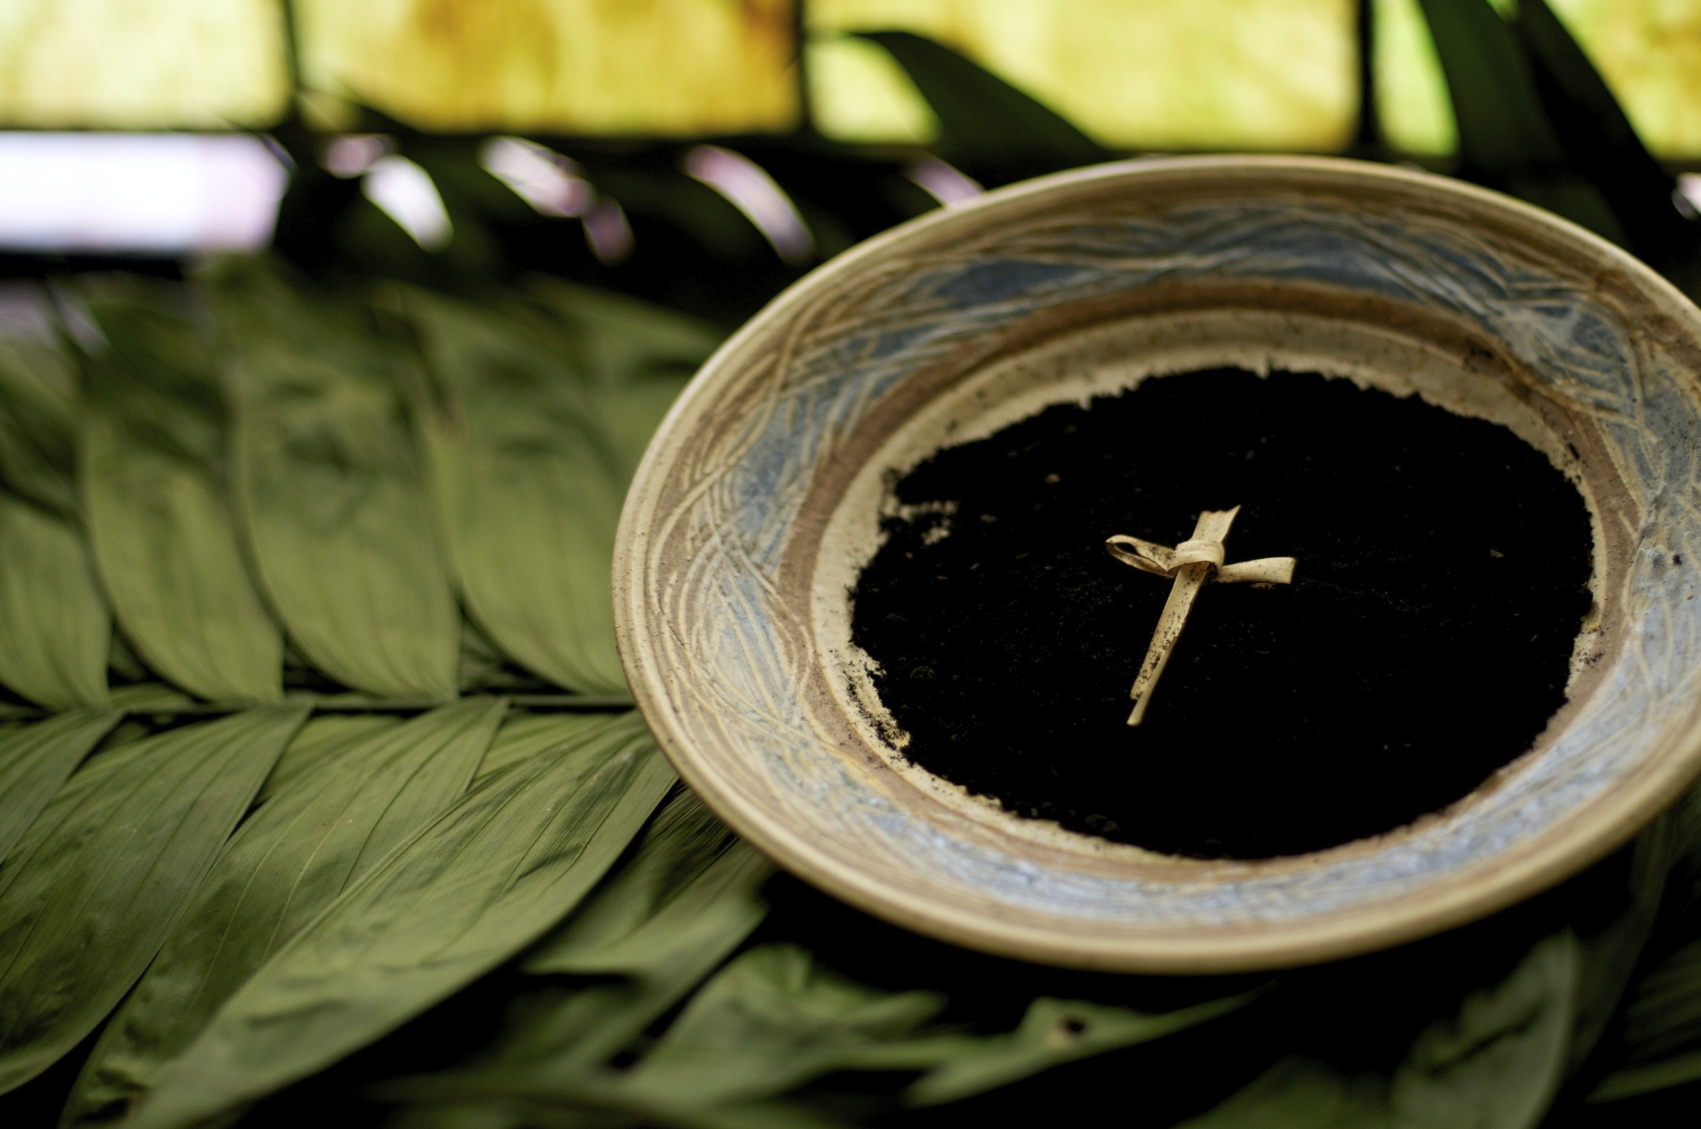 Ash Wednesday Service - Today at noon and 7pm